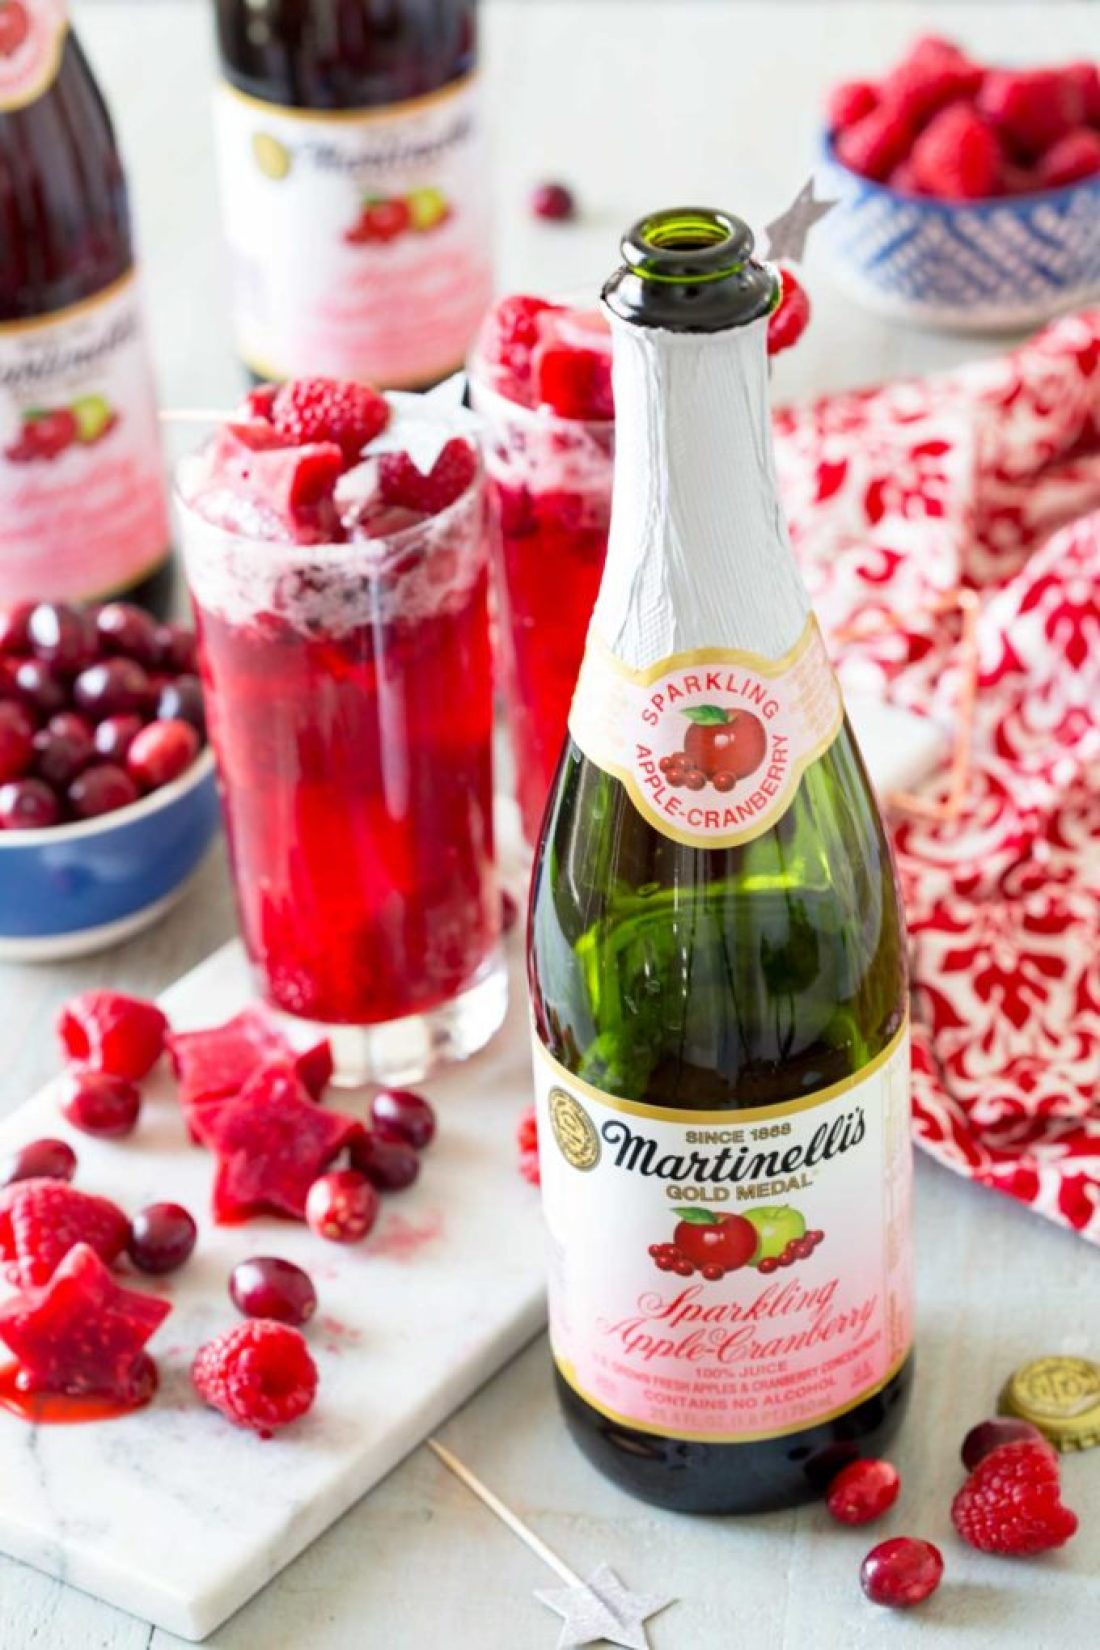 Matinellis is used in this cran apple raspberry sparkling brunch punch